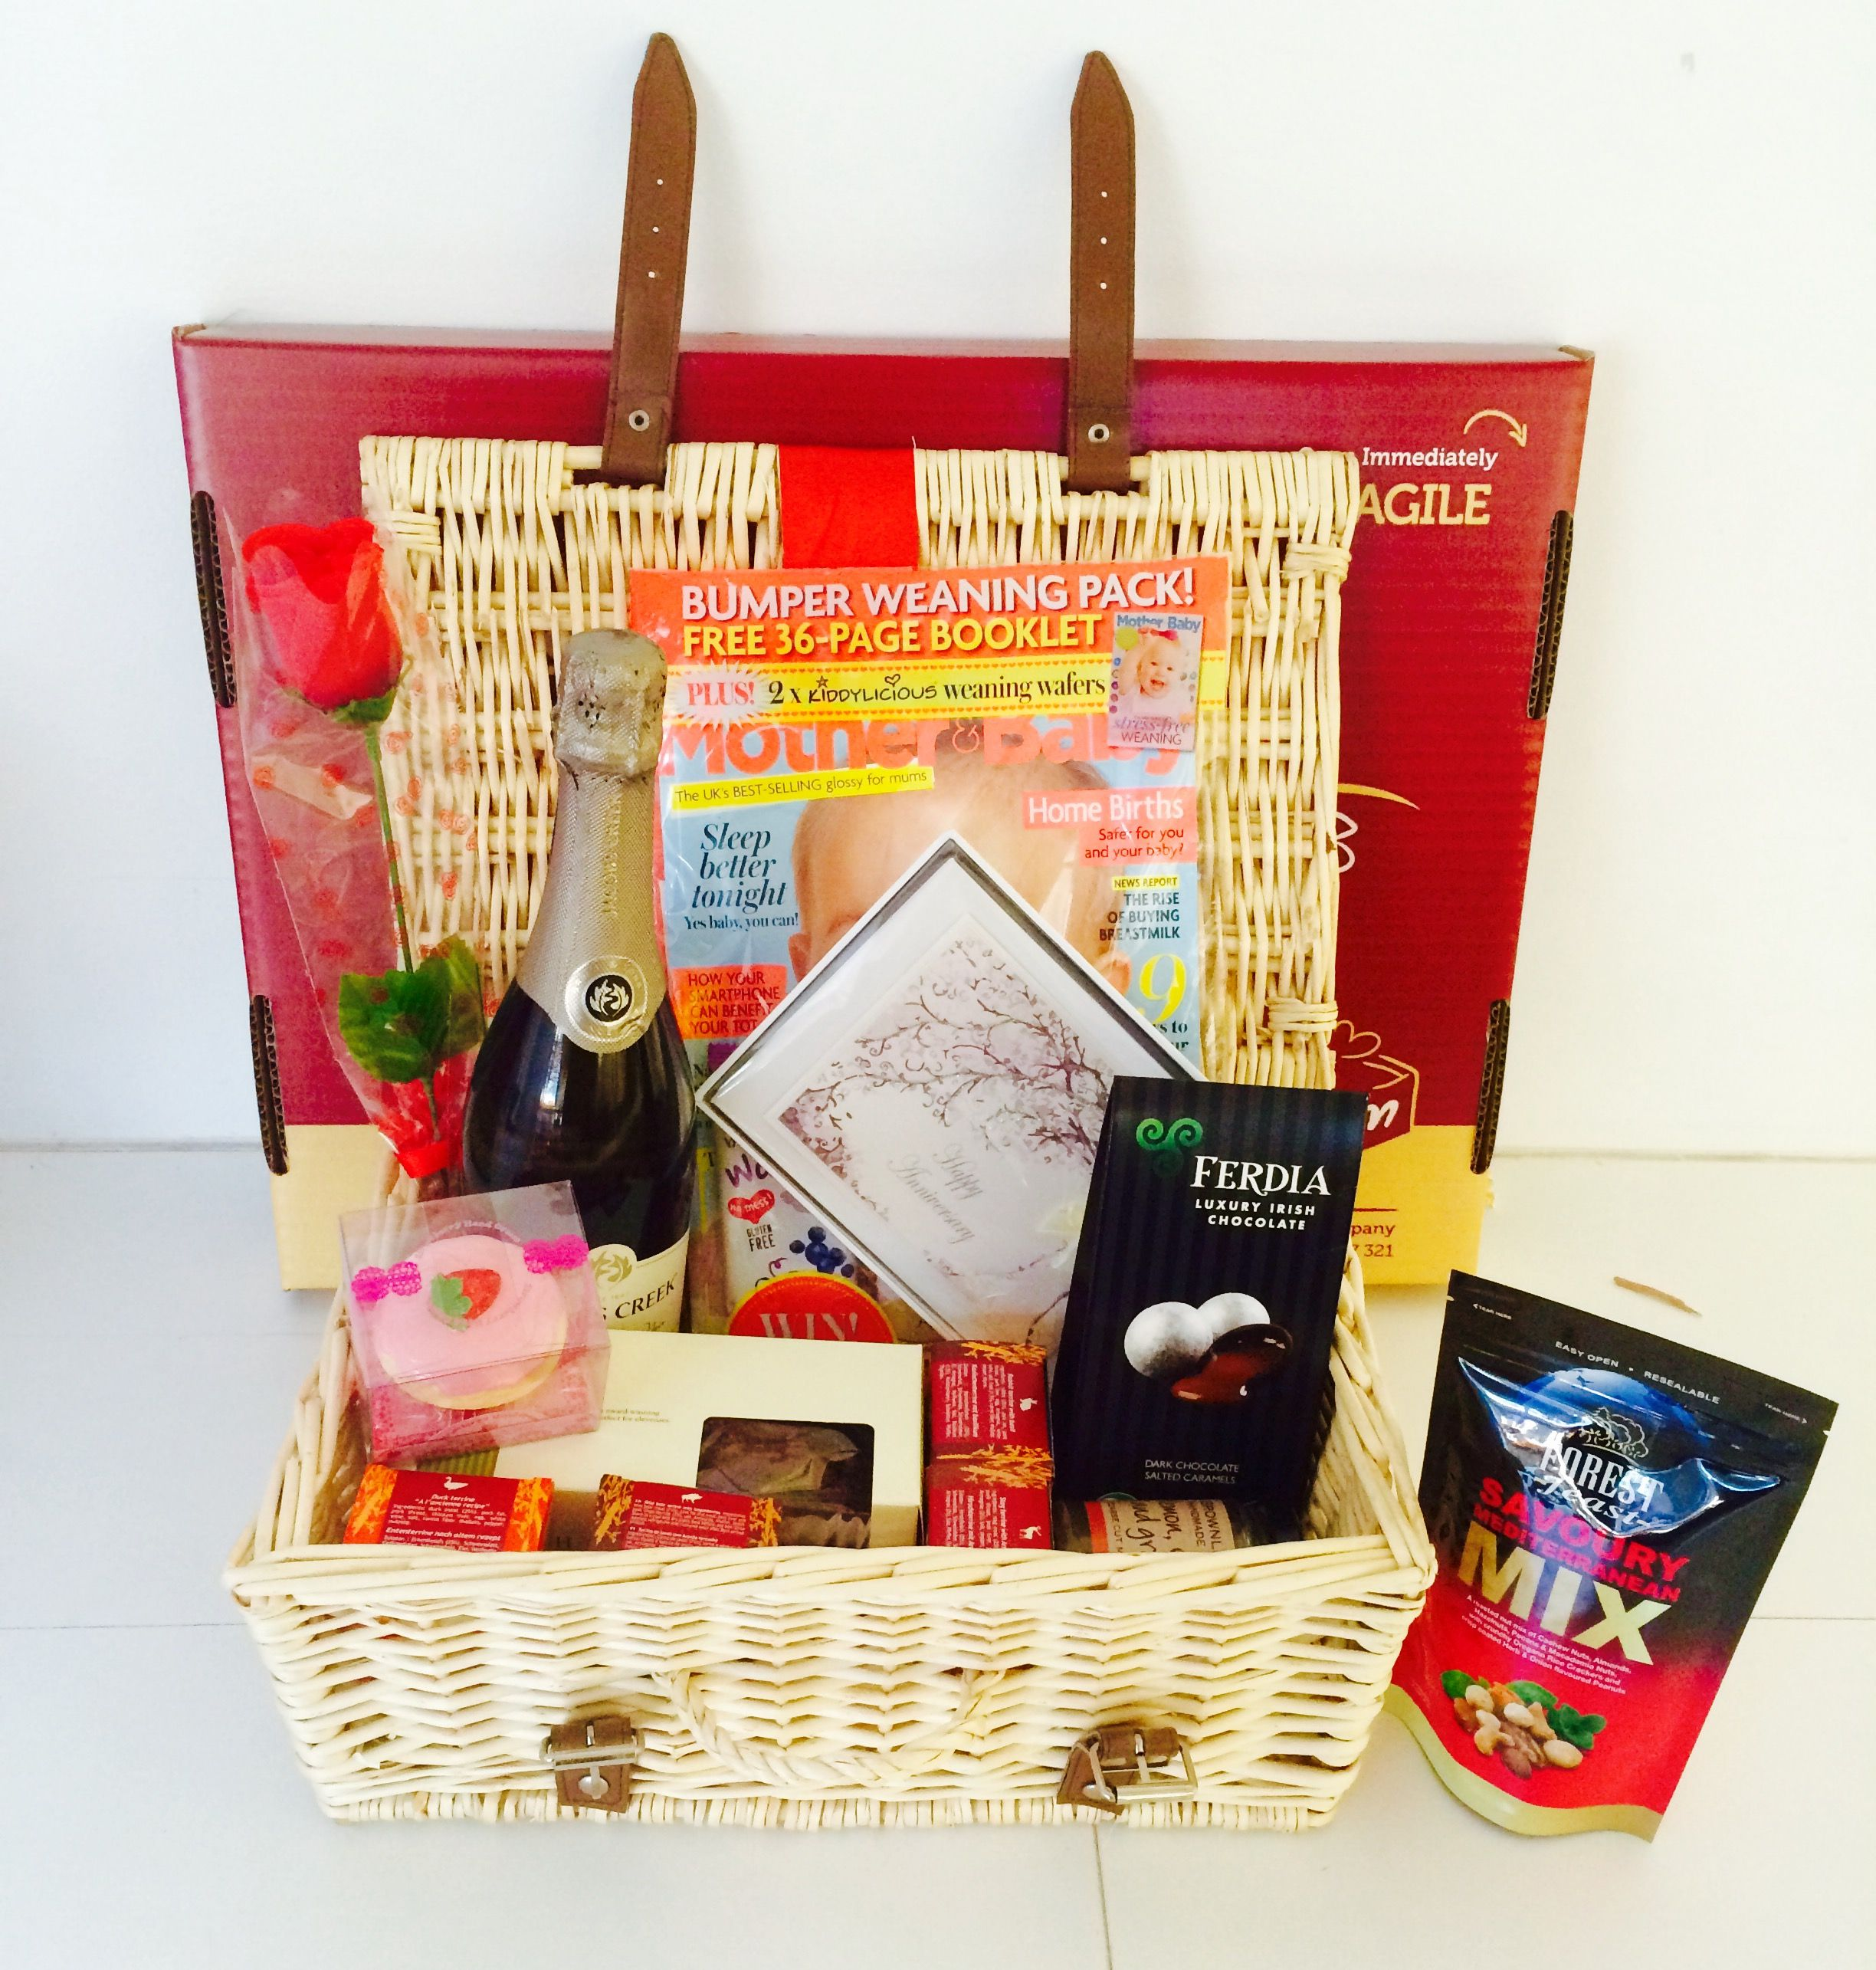 Anniversary gift hamper created by a husband for his